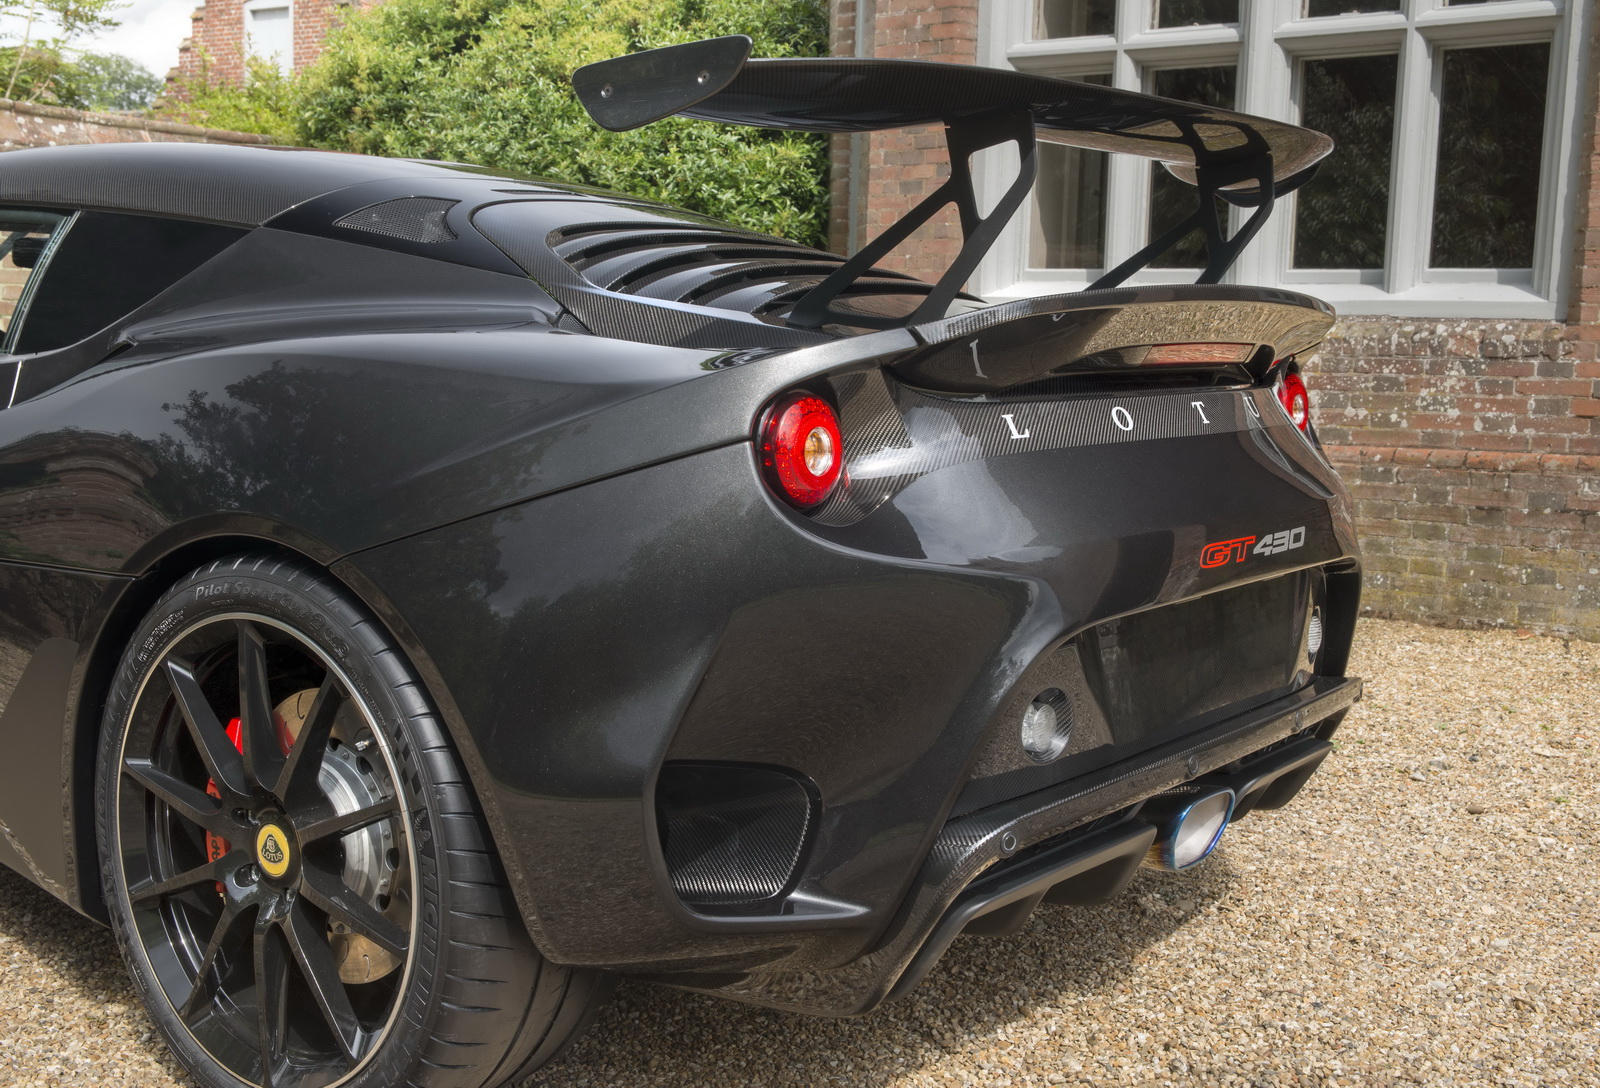 New Evora GT430 Is Not Only The Most Powerful Lotus Yet, It's Also The Best-Looking ...